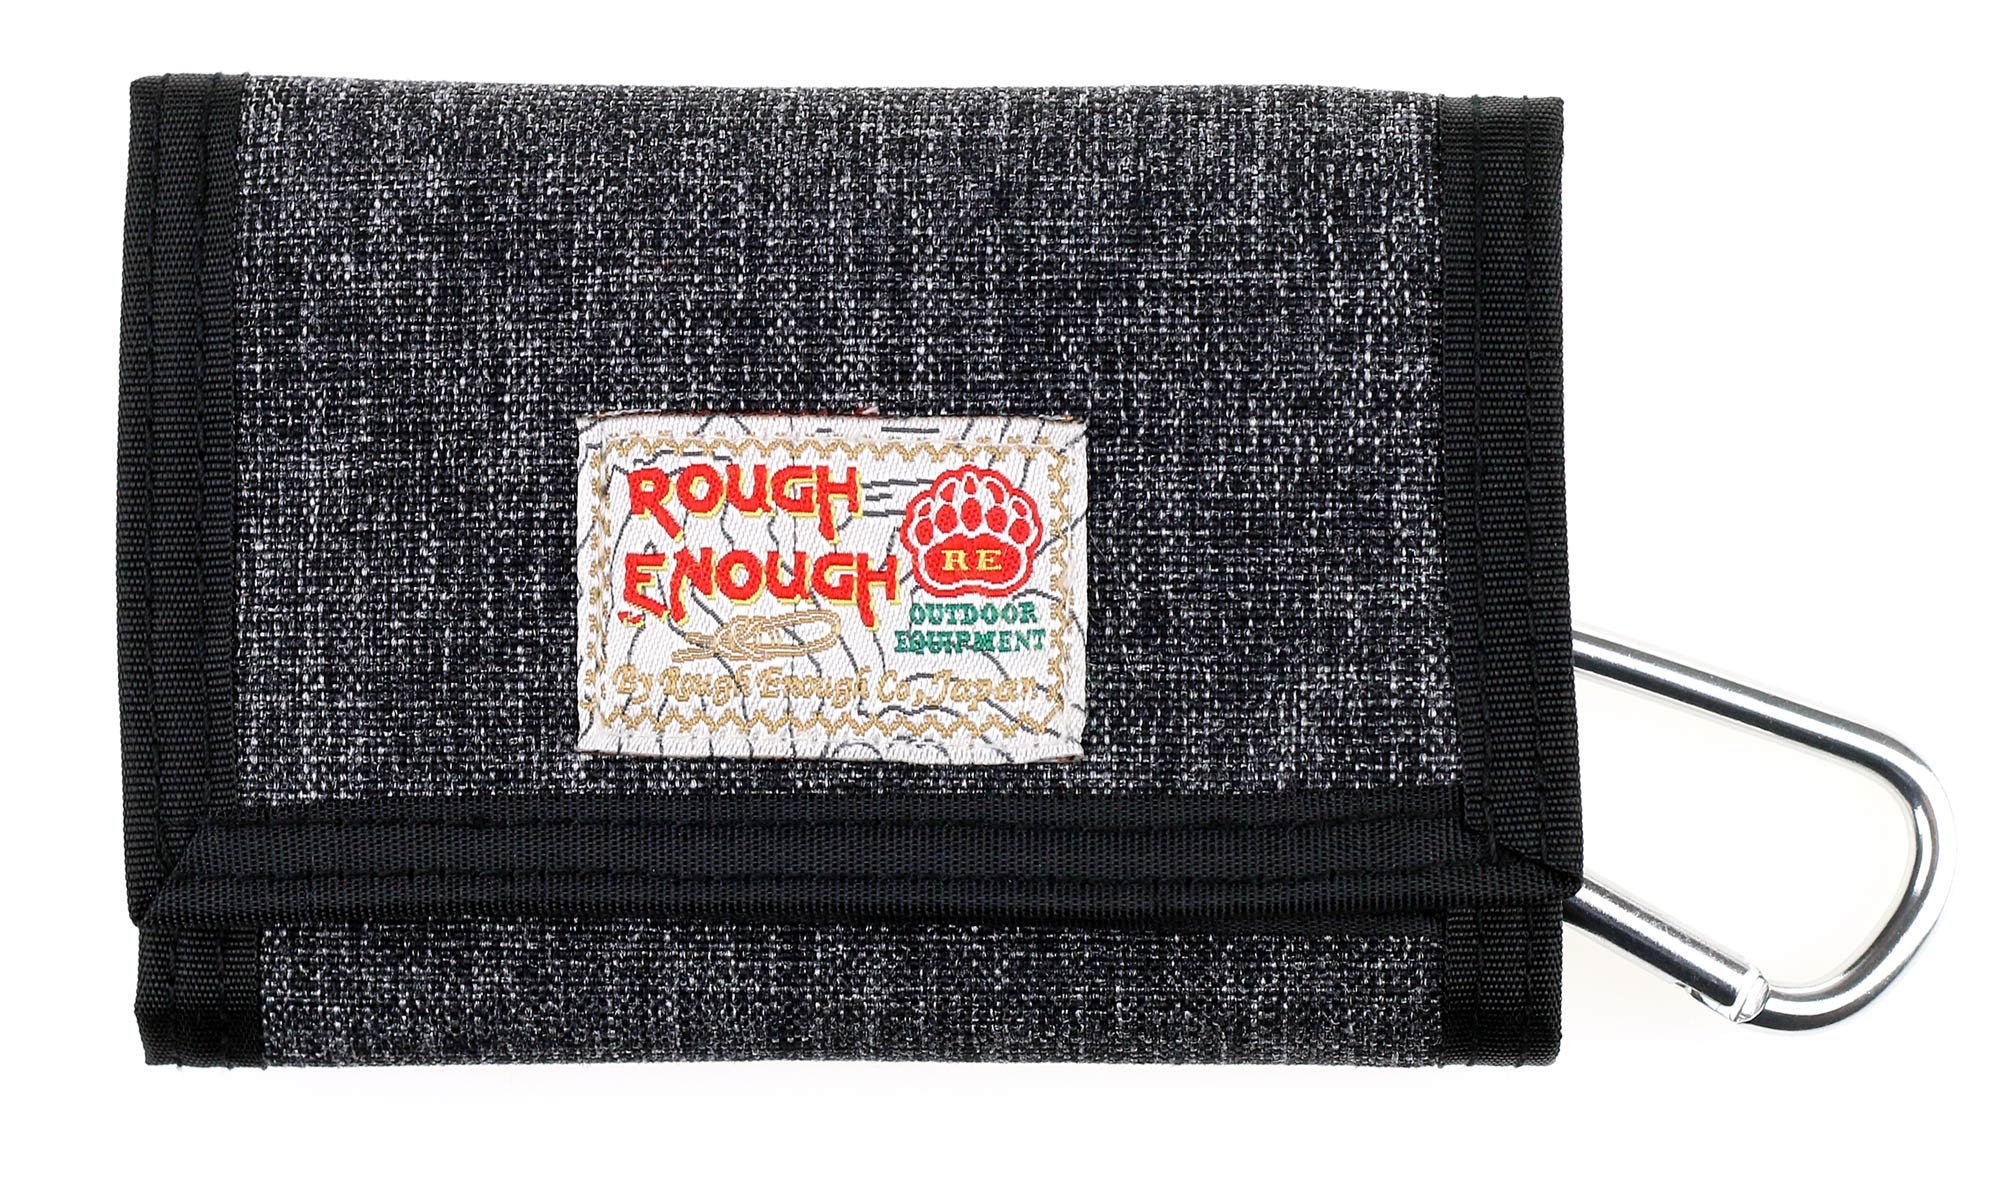 ROUGH ENOUGH Premium Cotton Stone Washed Classic Basics Stylish Fancy Mini Portable Trifold Coin Wallet Purse Holder Organizer Case with Zippers for KidsBoy Men Sports Outdoors Travel Black